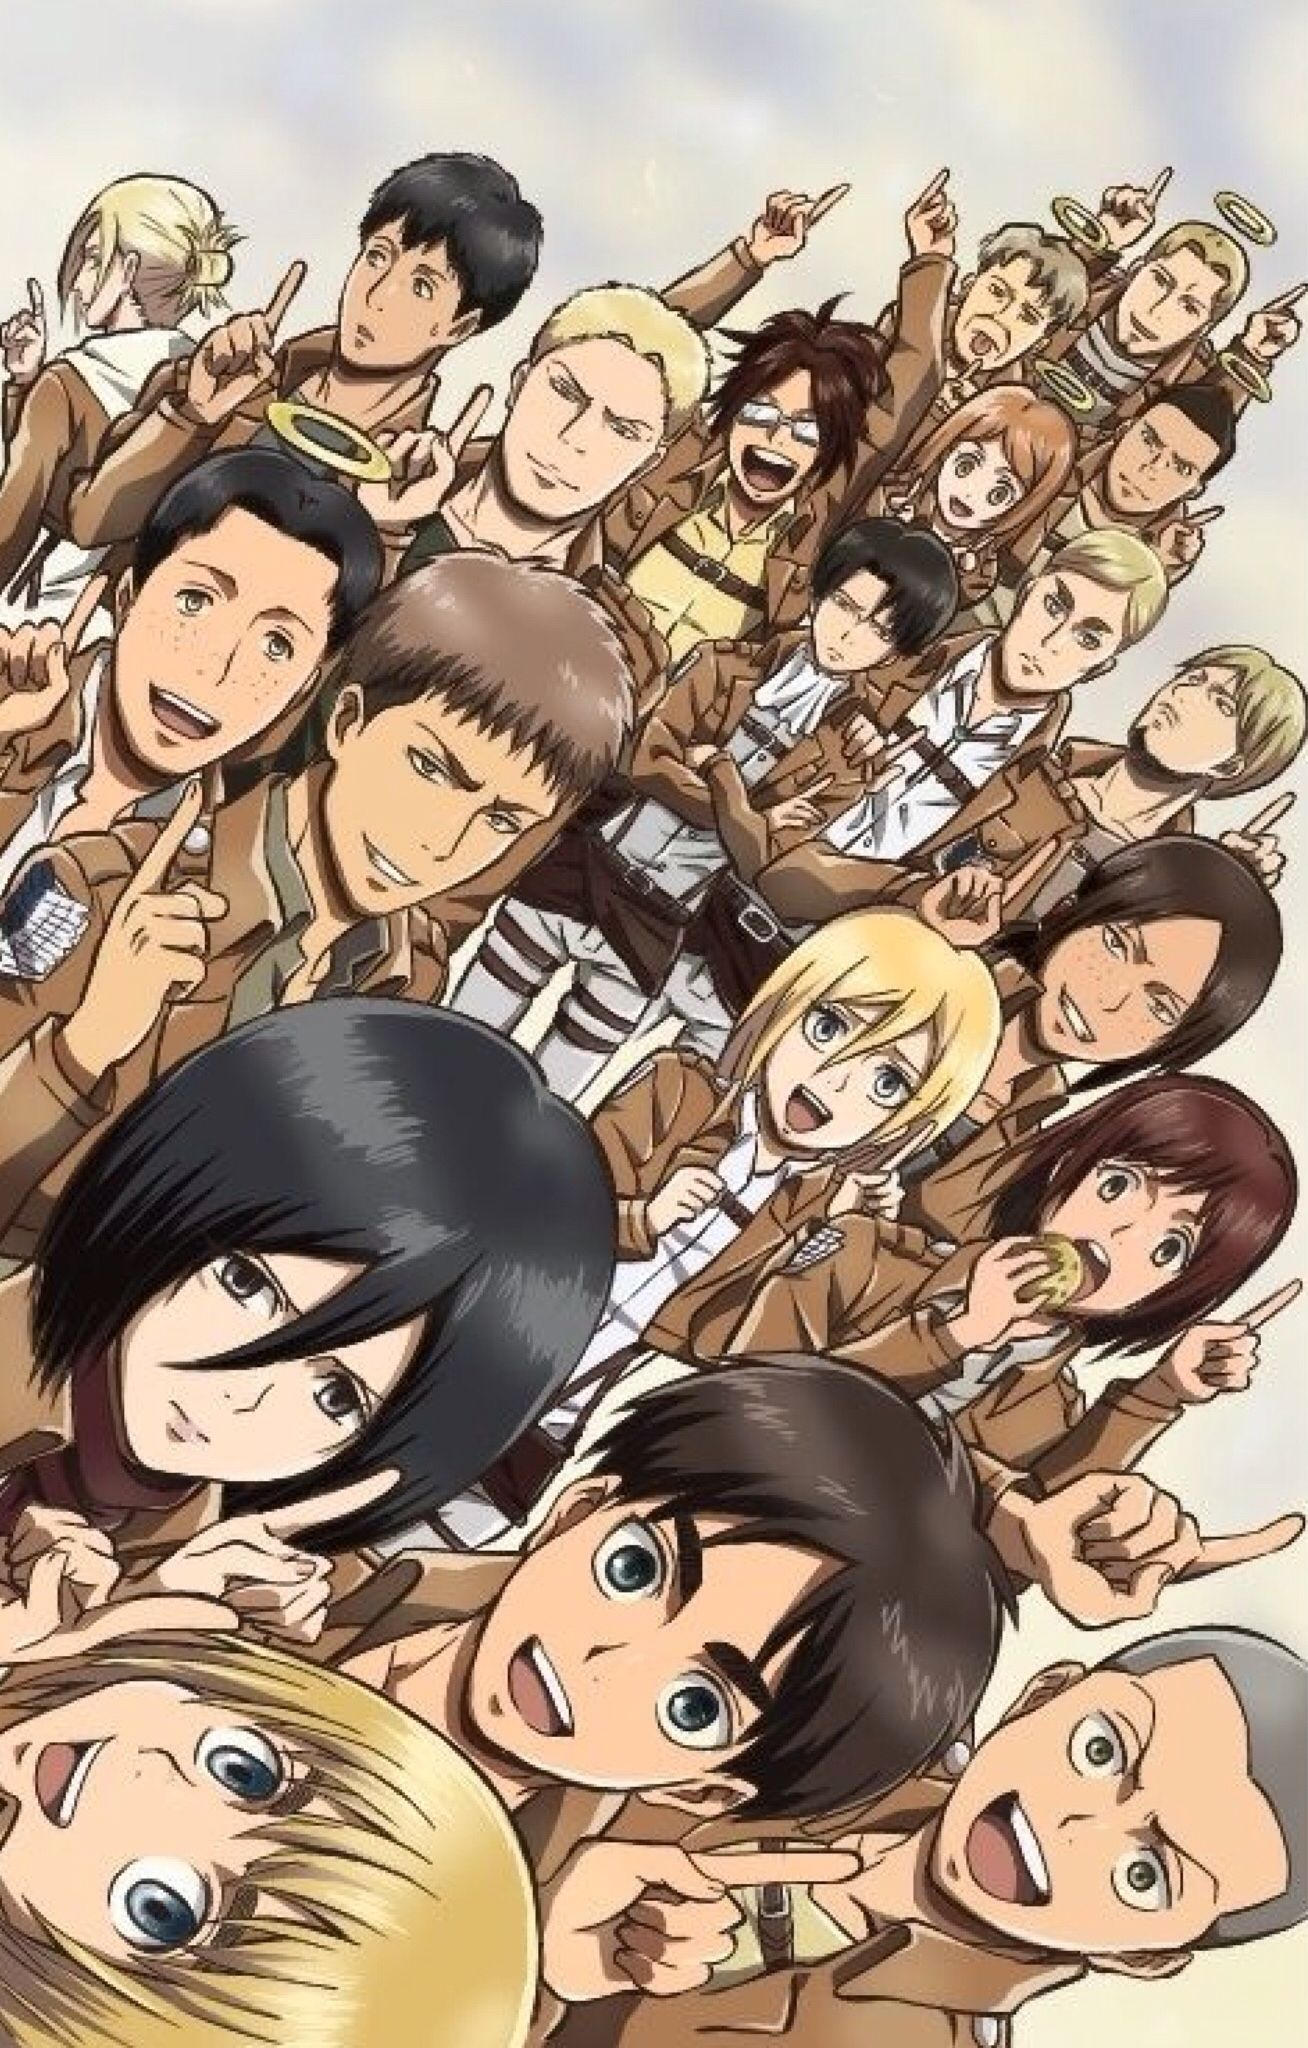 Attack On Titans Attack on titan anime, Anime, Attack on